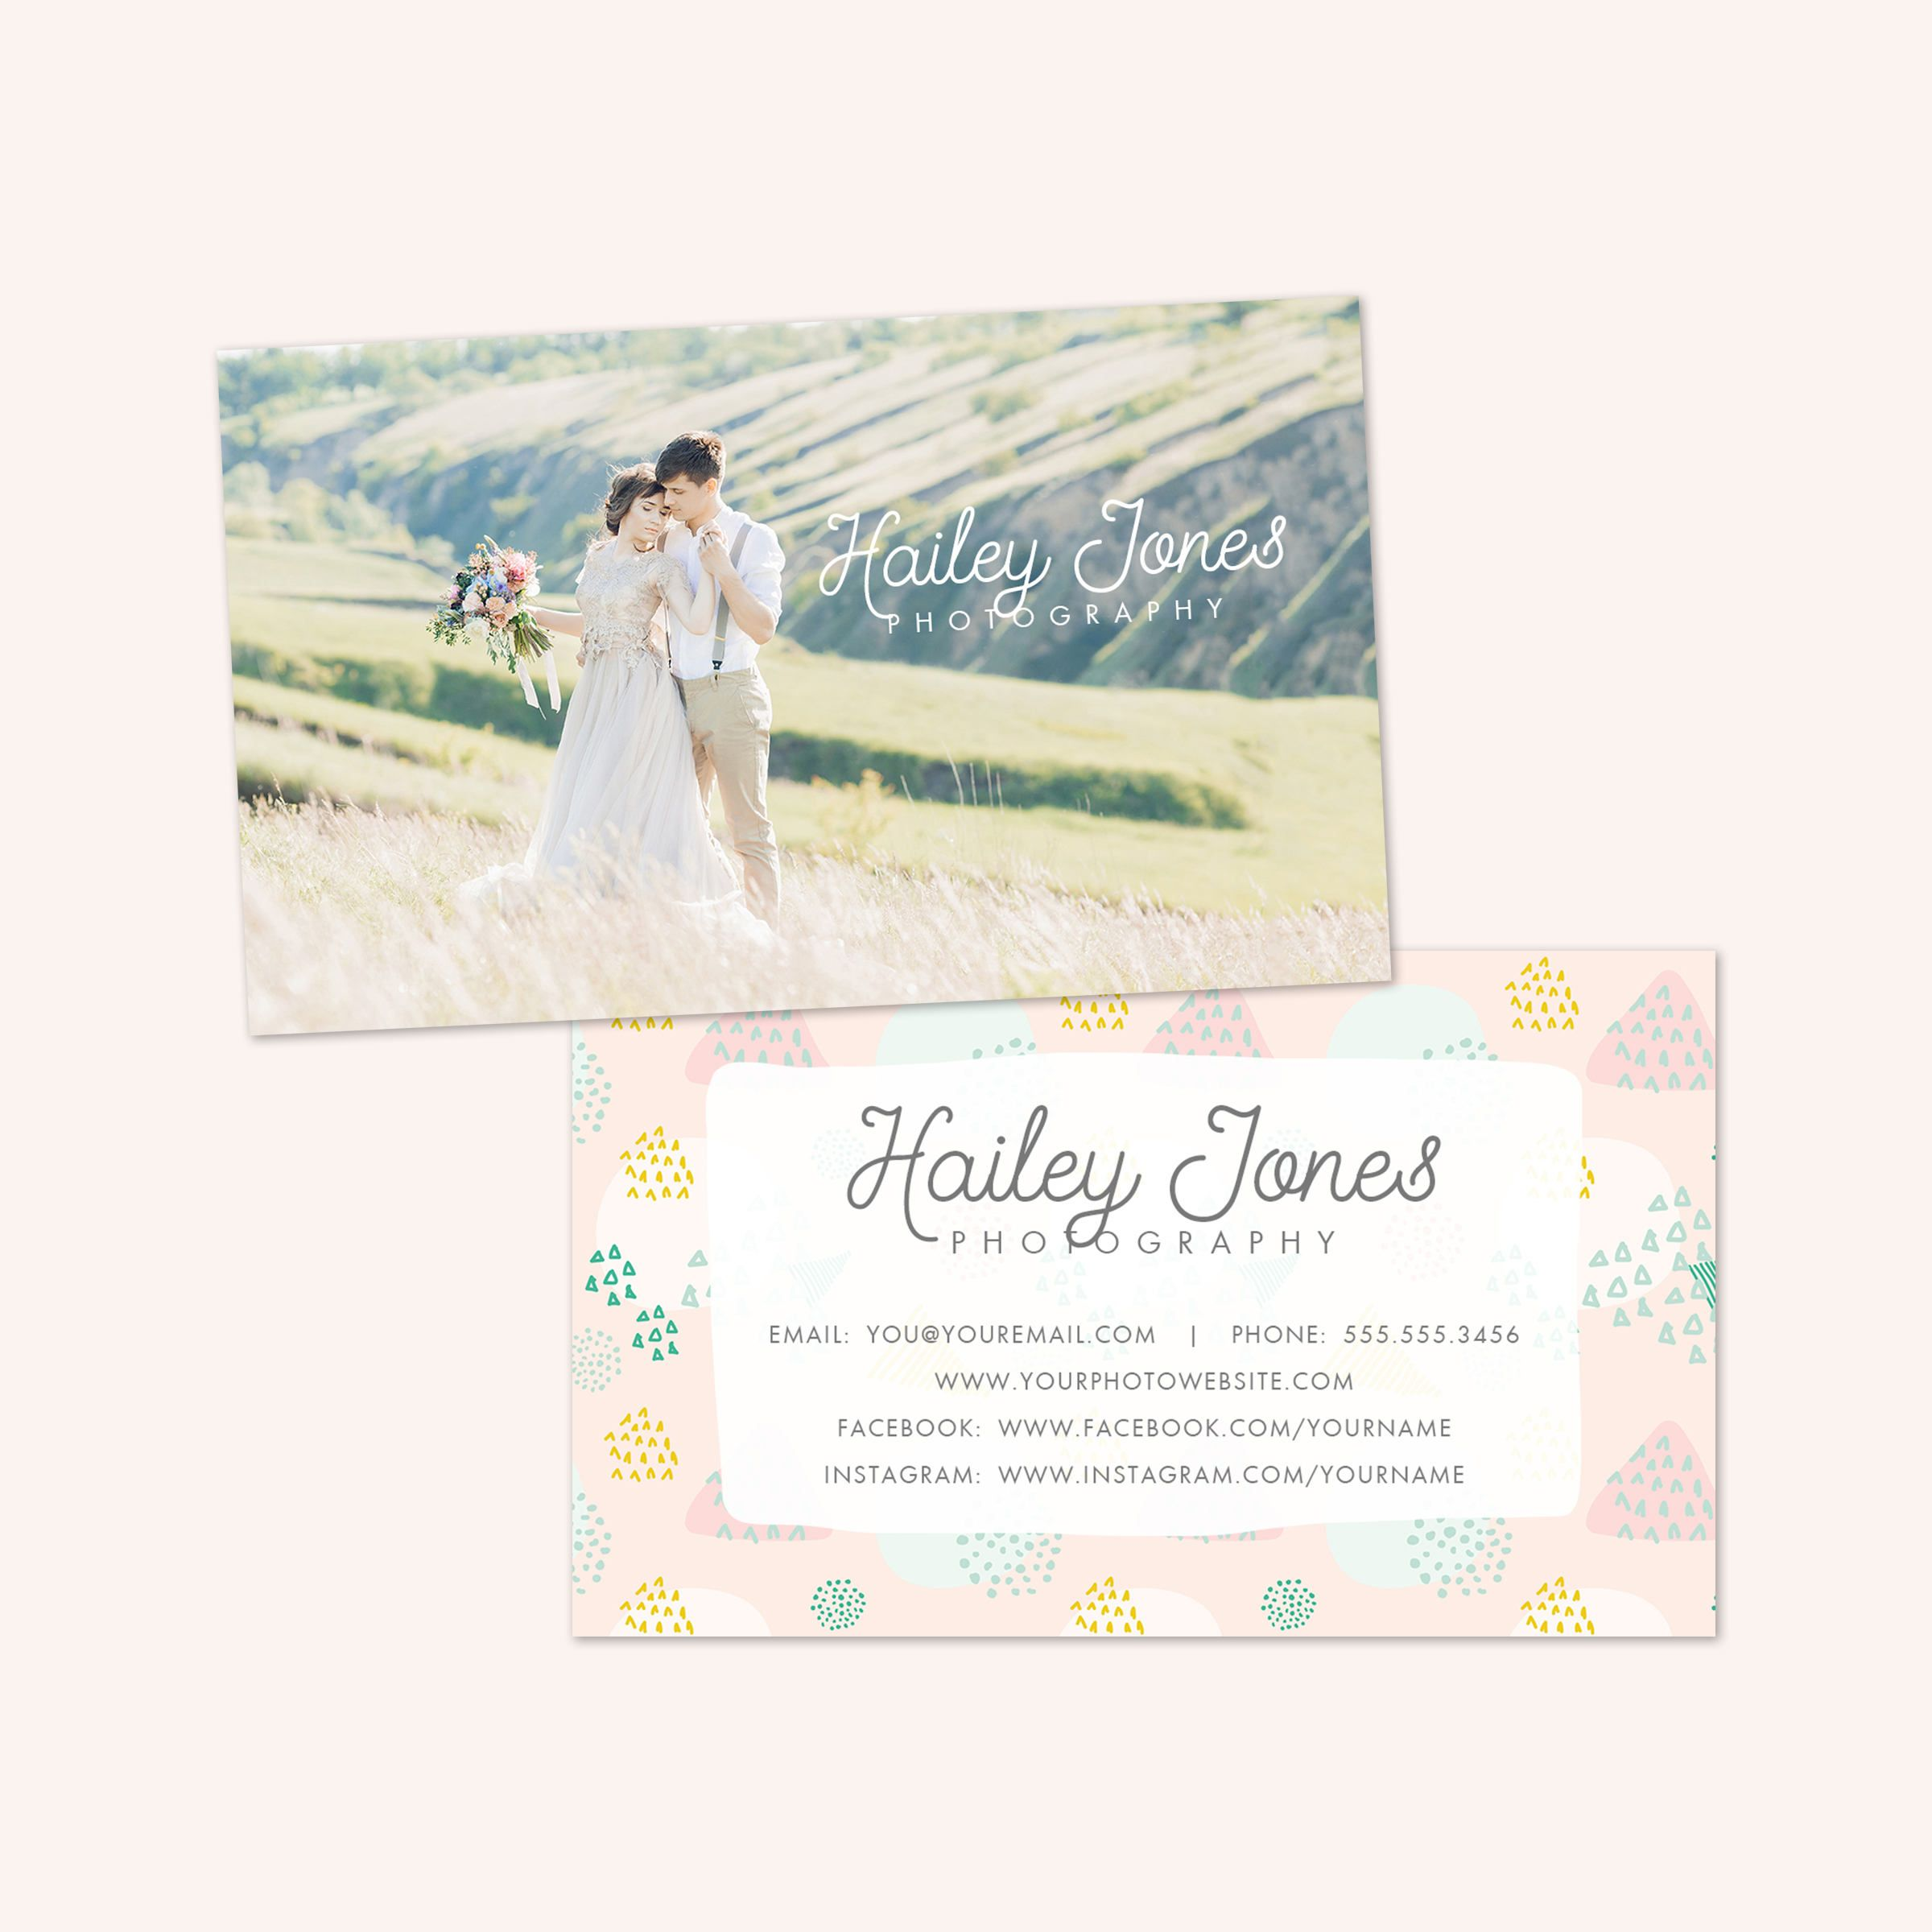 Photography business card, event planner business card design ...